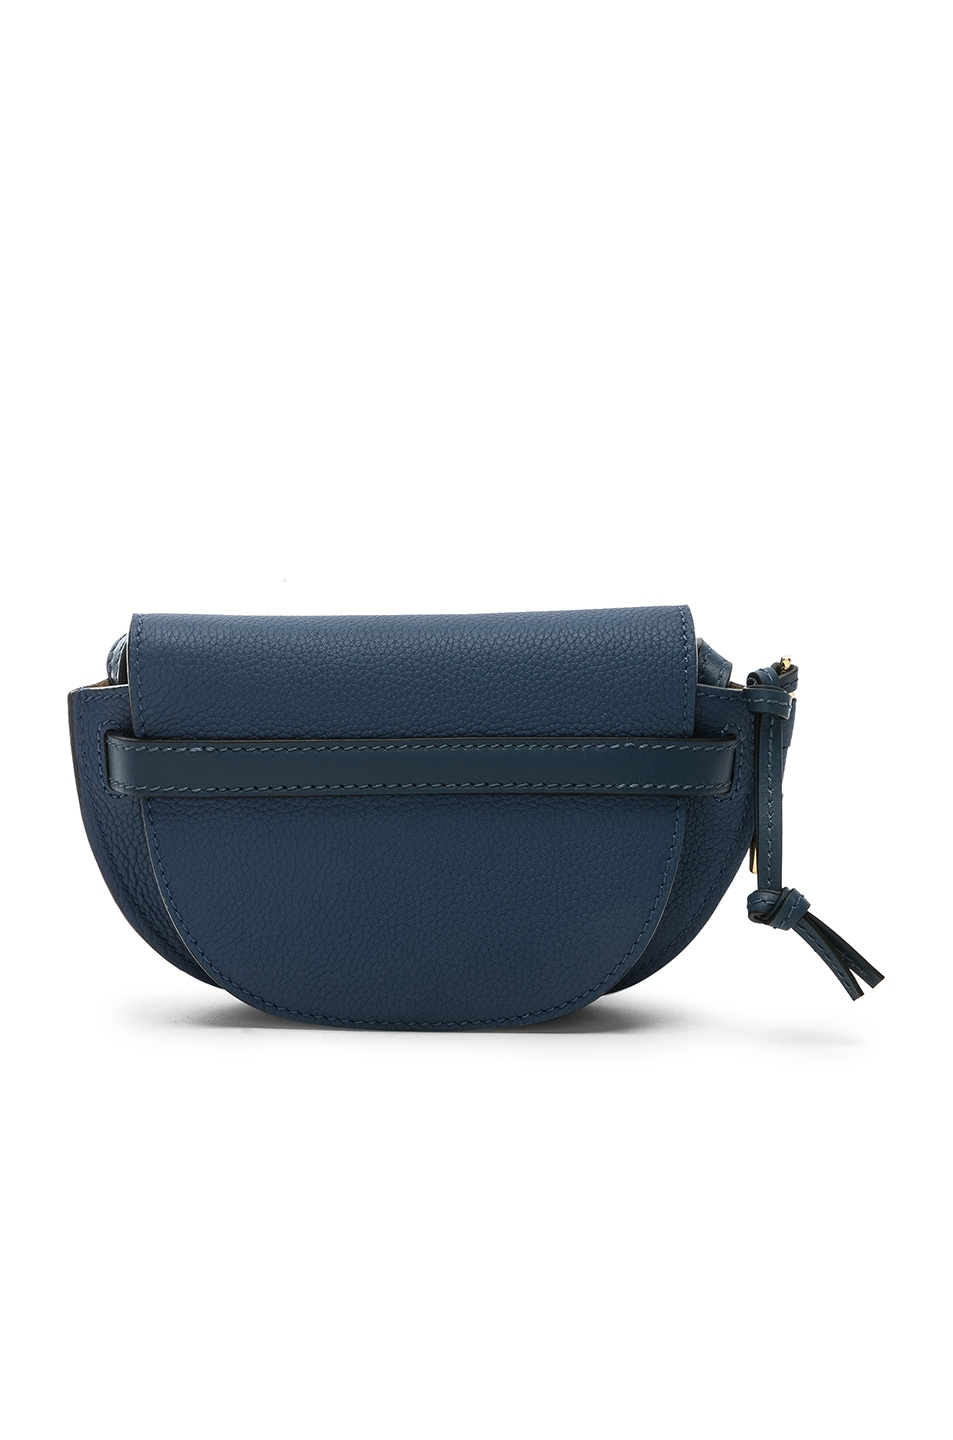 Image 2 of Loewe Gate Mini Bag in Varsity Blue & Indigo